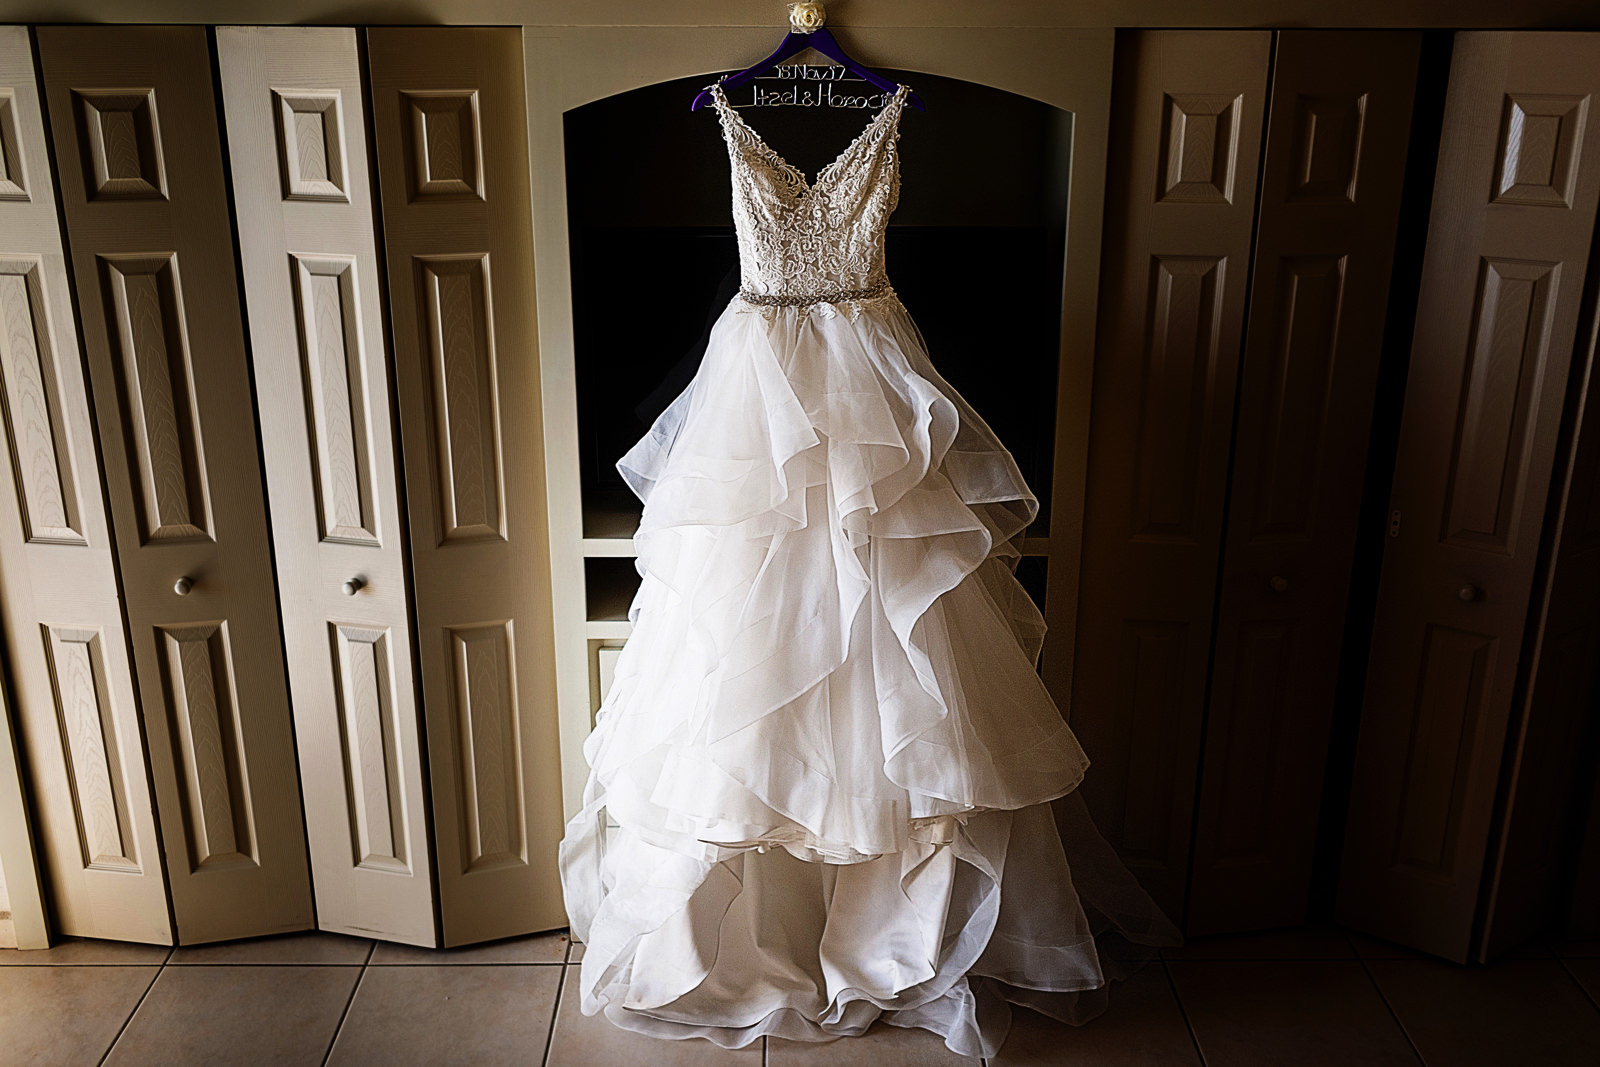 Wedding dress hanging in the room by itself